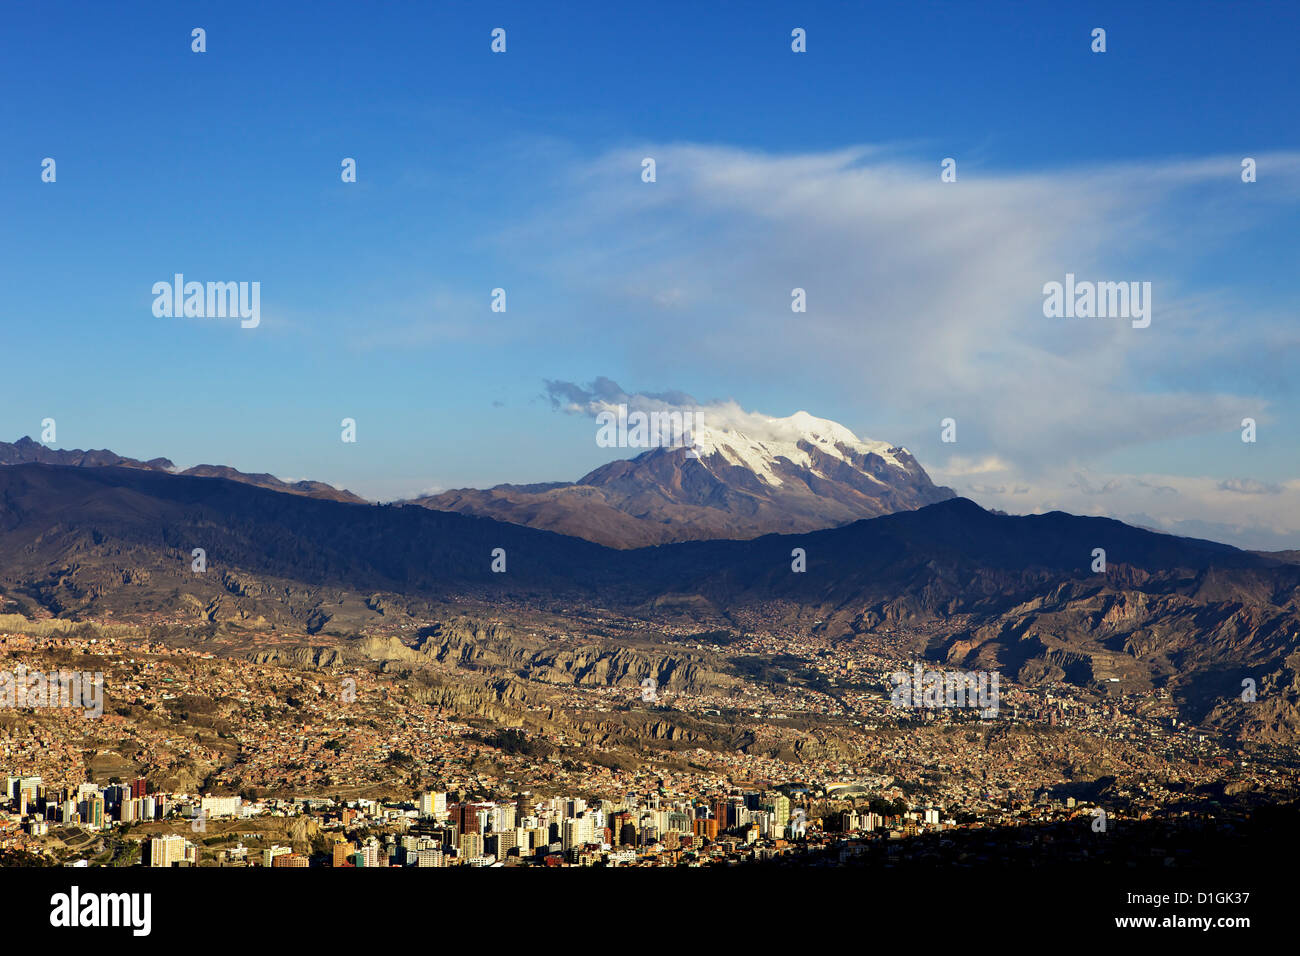 View over La Paz with Mount Illimani in the background, Bolivia, South America - Stock Image